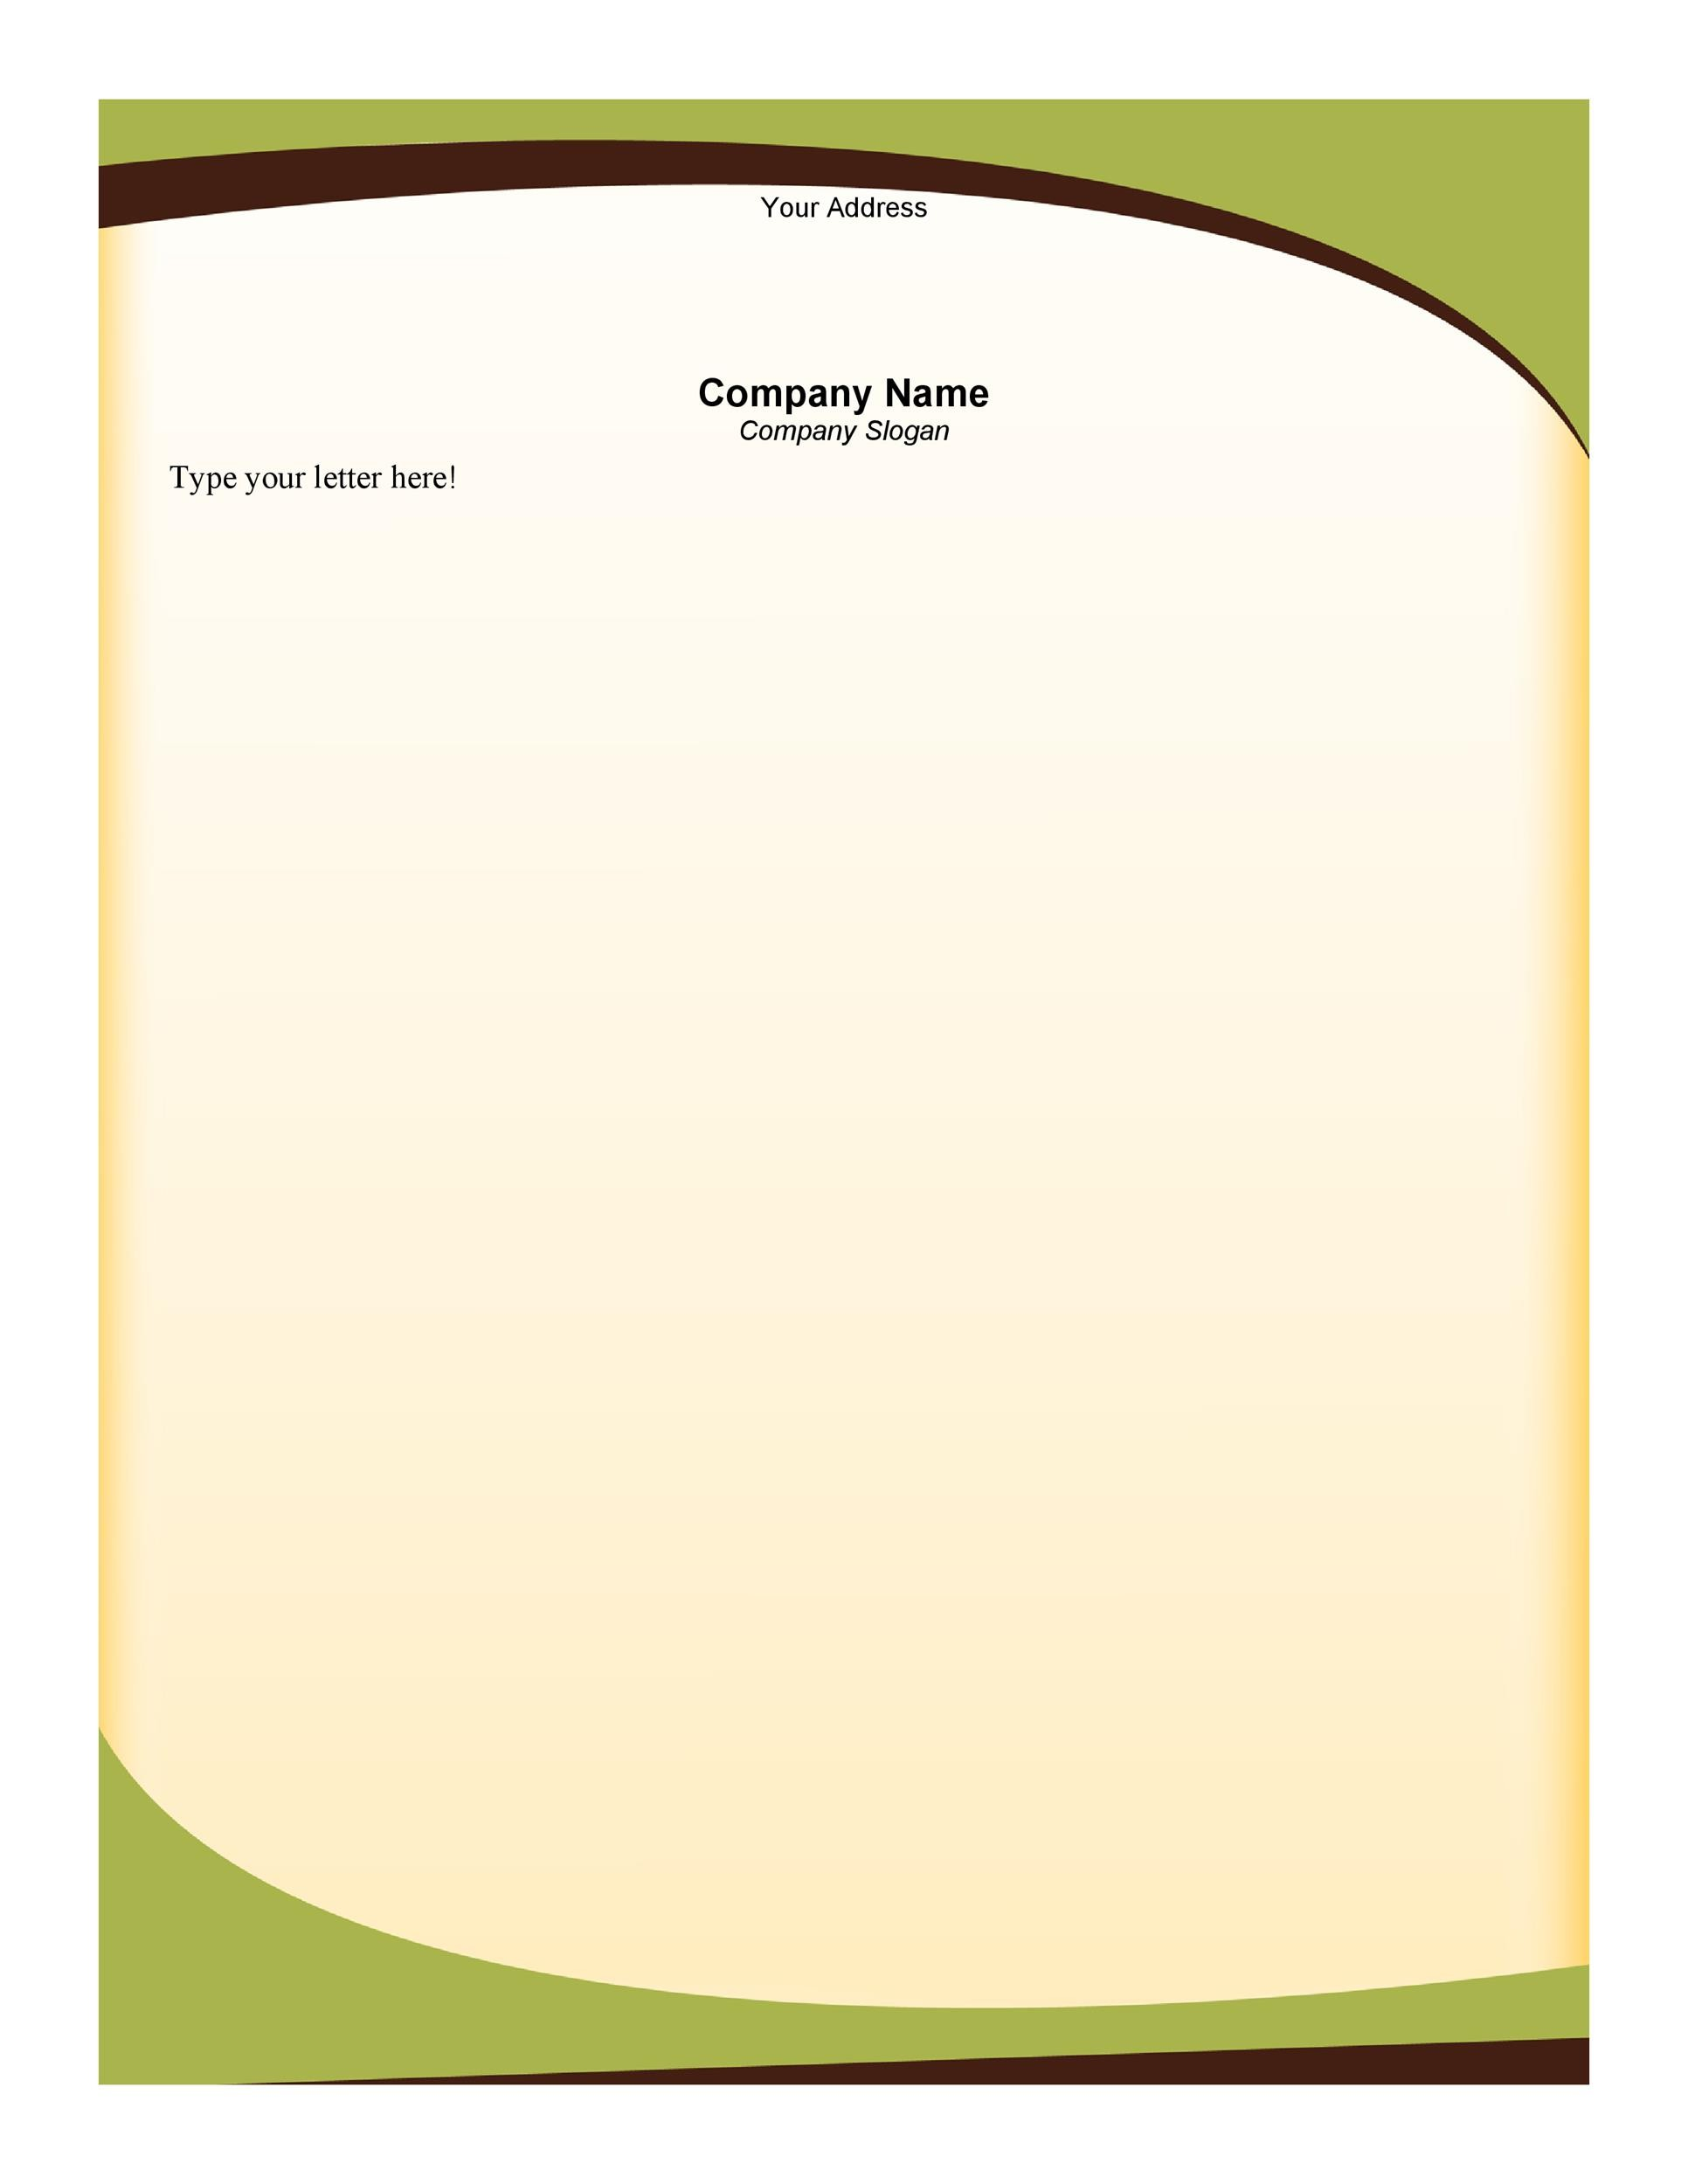 Lovely Printable Letterhead Template 04 Within Free Letterhead Samples